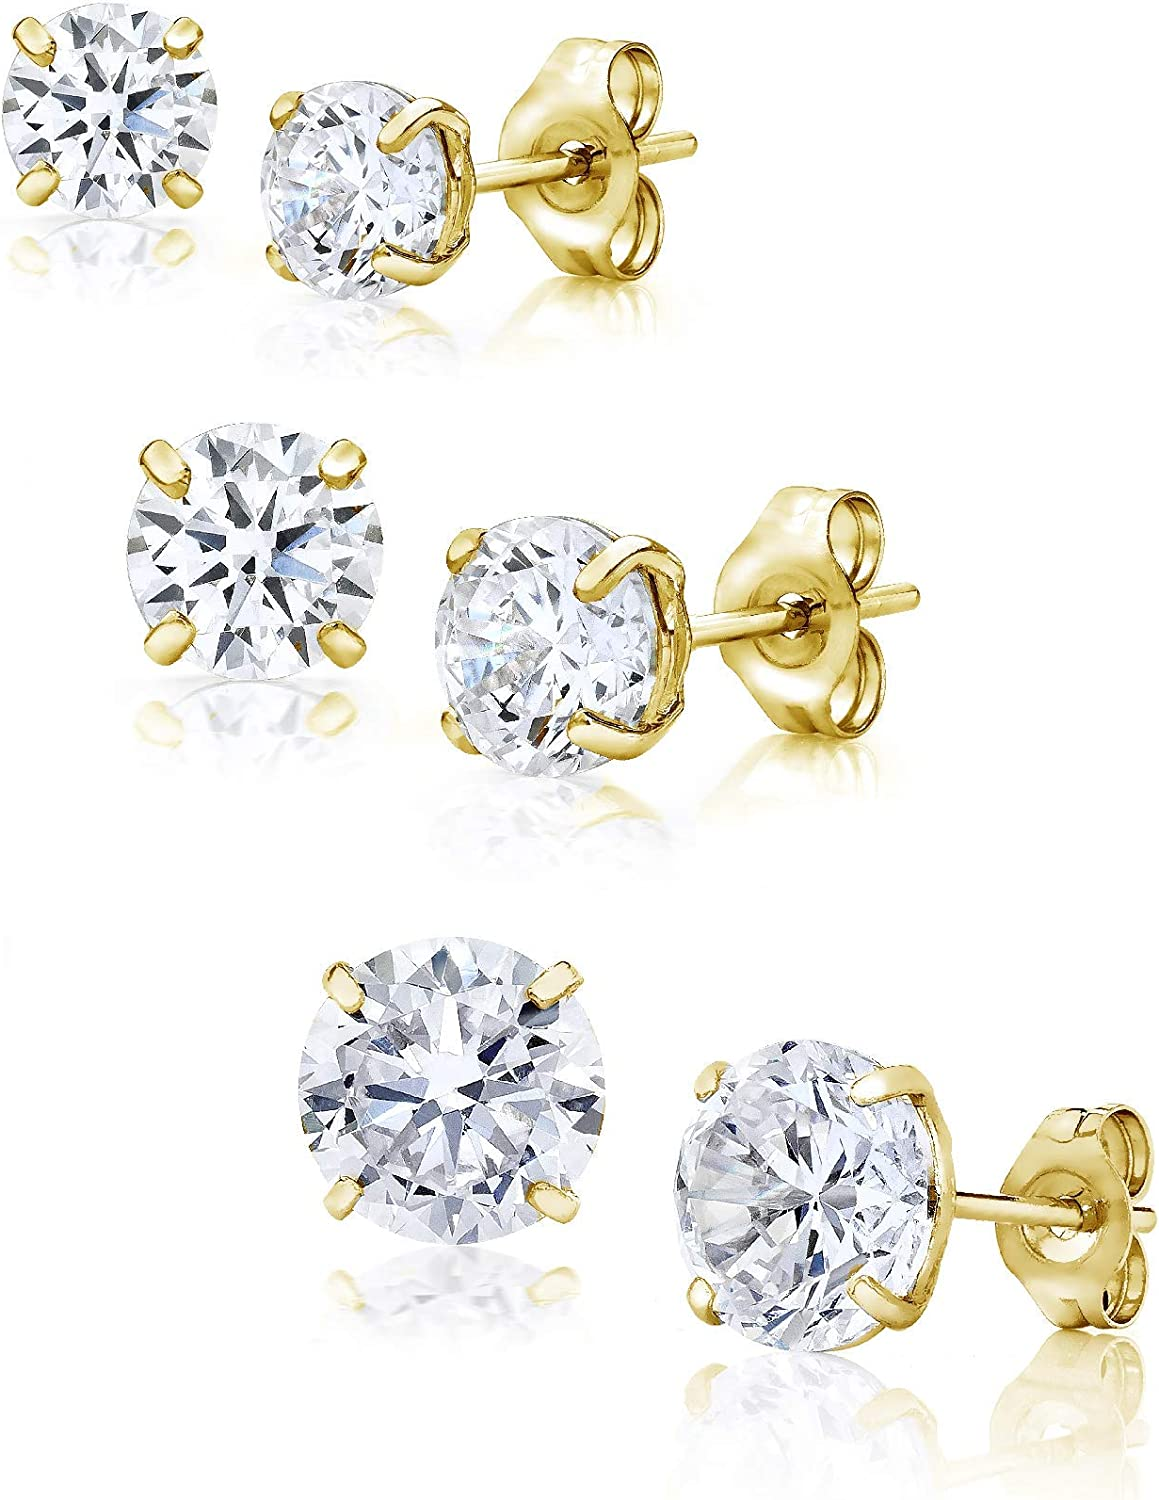 14K Gold 3MM, 4MM, 5MM Round Basket Setting CZ Stud Earrings 3 Pair Pack - Available in White, Yellow, or Rose - Includes Real 14K Gold Backings (Yellow)